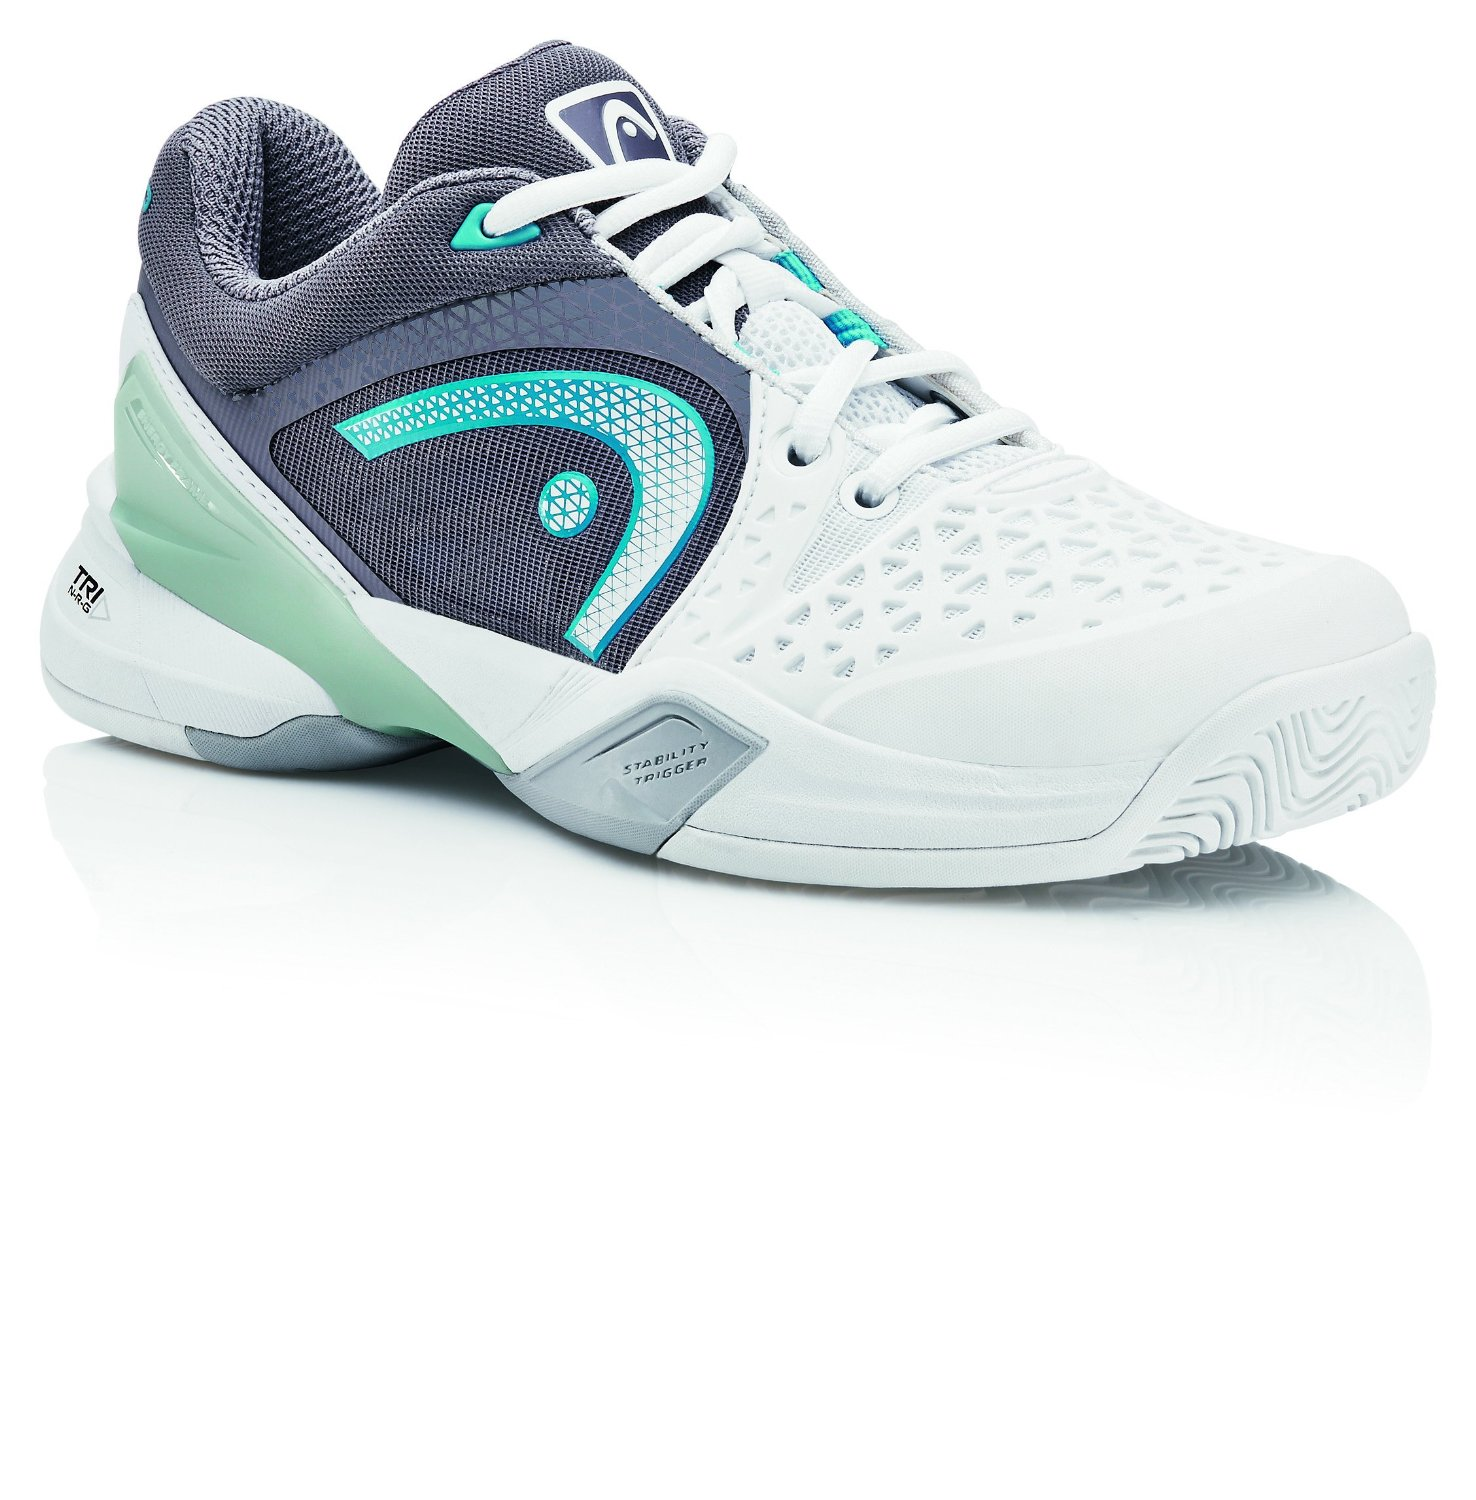 Head Revolt Pro Women's Tennis Shoe (White/Cyan/Blue)